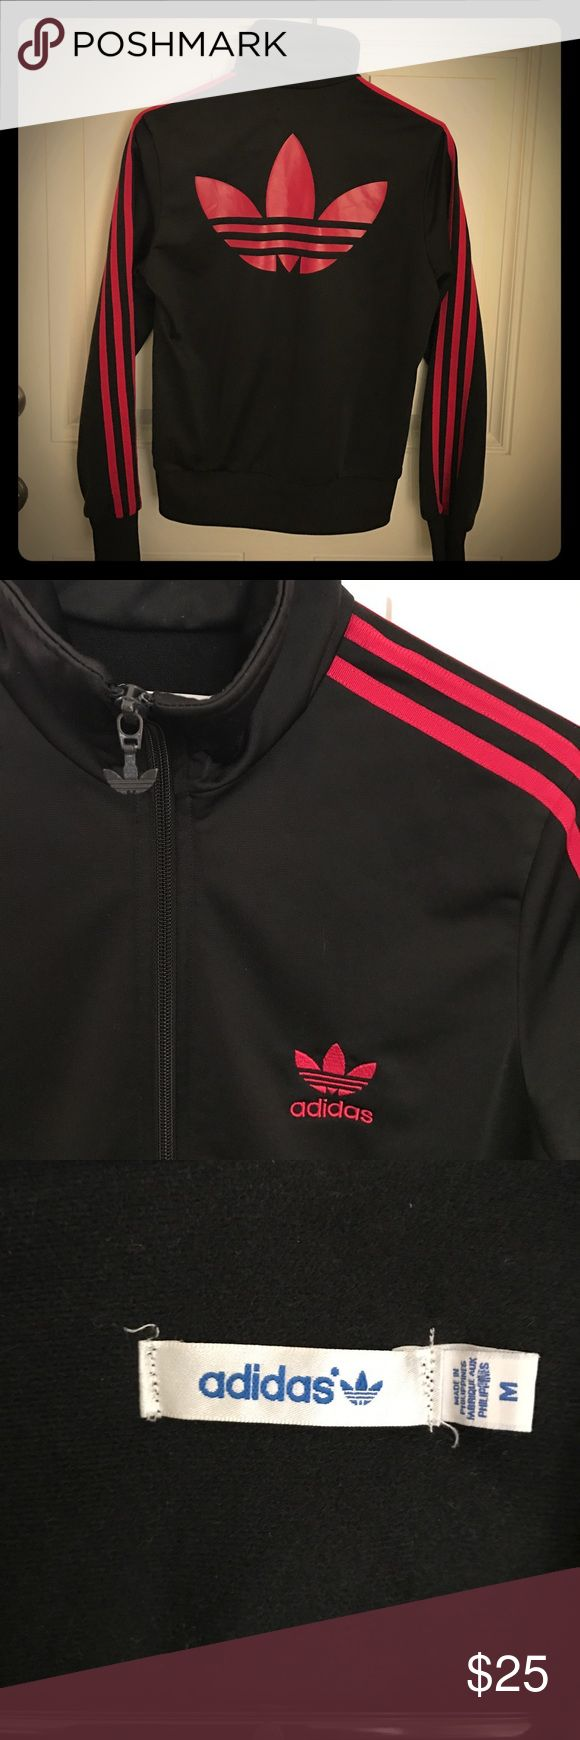 Vintage Adidas zip up track jacket. Dark pink/ almost red and black. Perfect condition. I hate to let this gem go but I live in Florida and can't ever wear her! She needs love. adidas Jackets & Coats